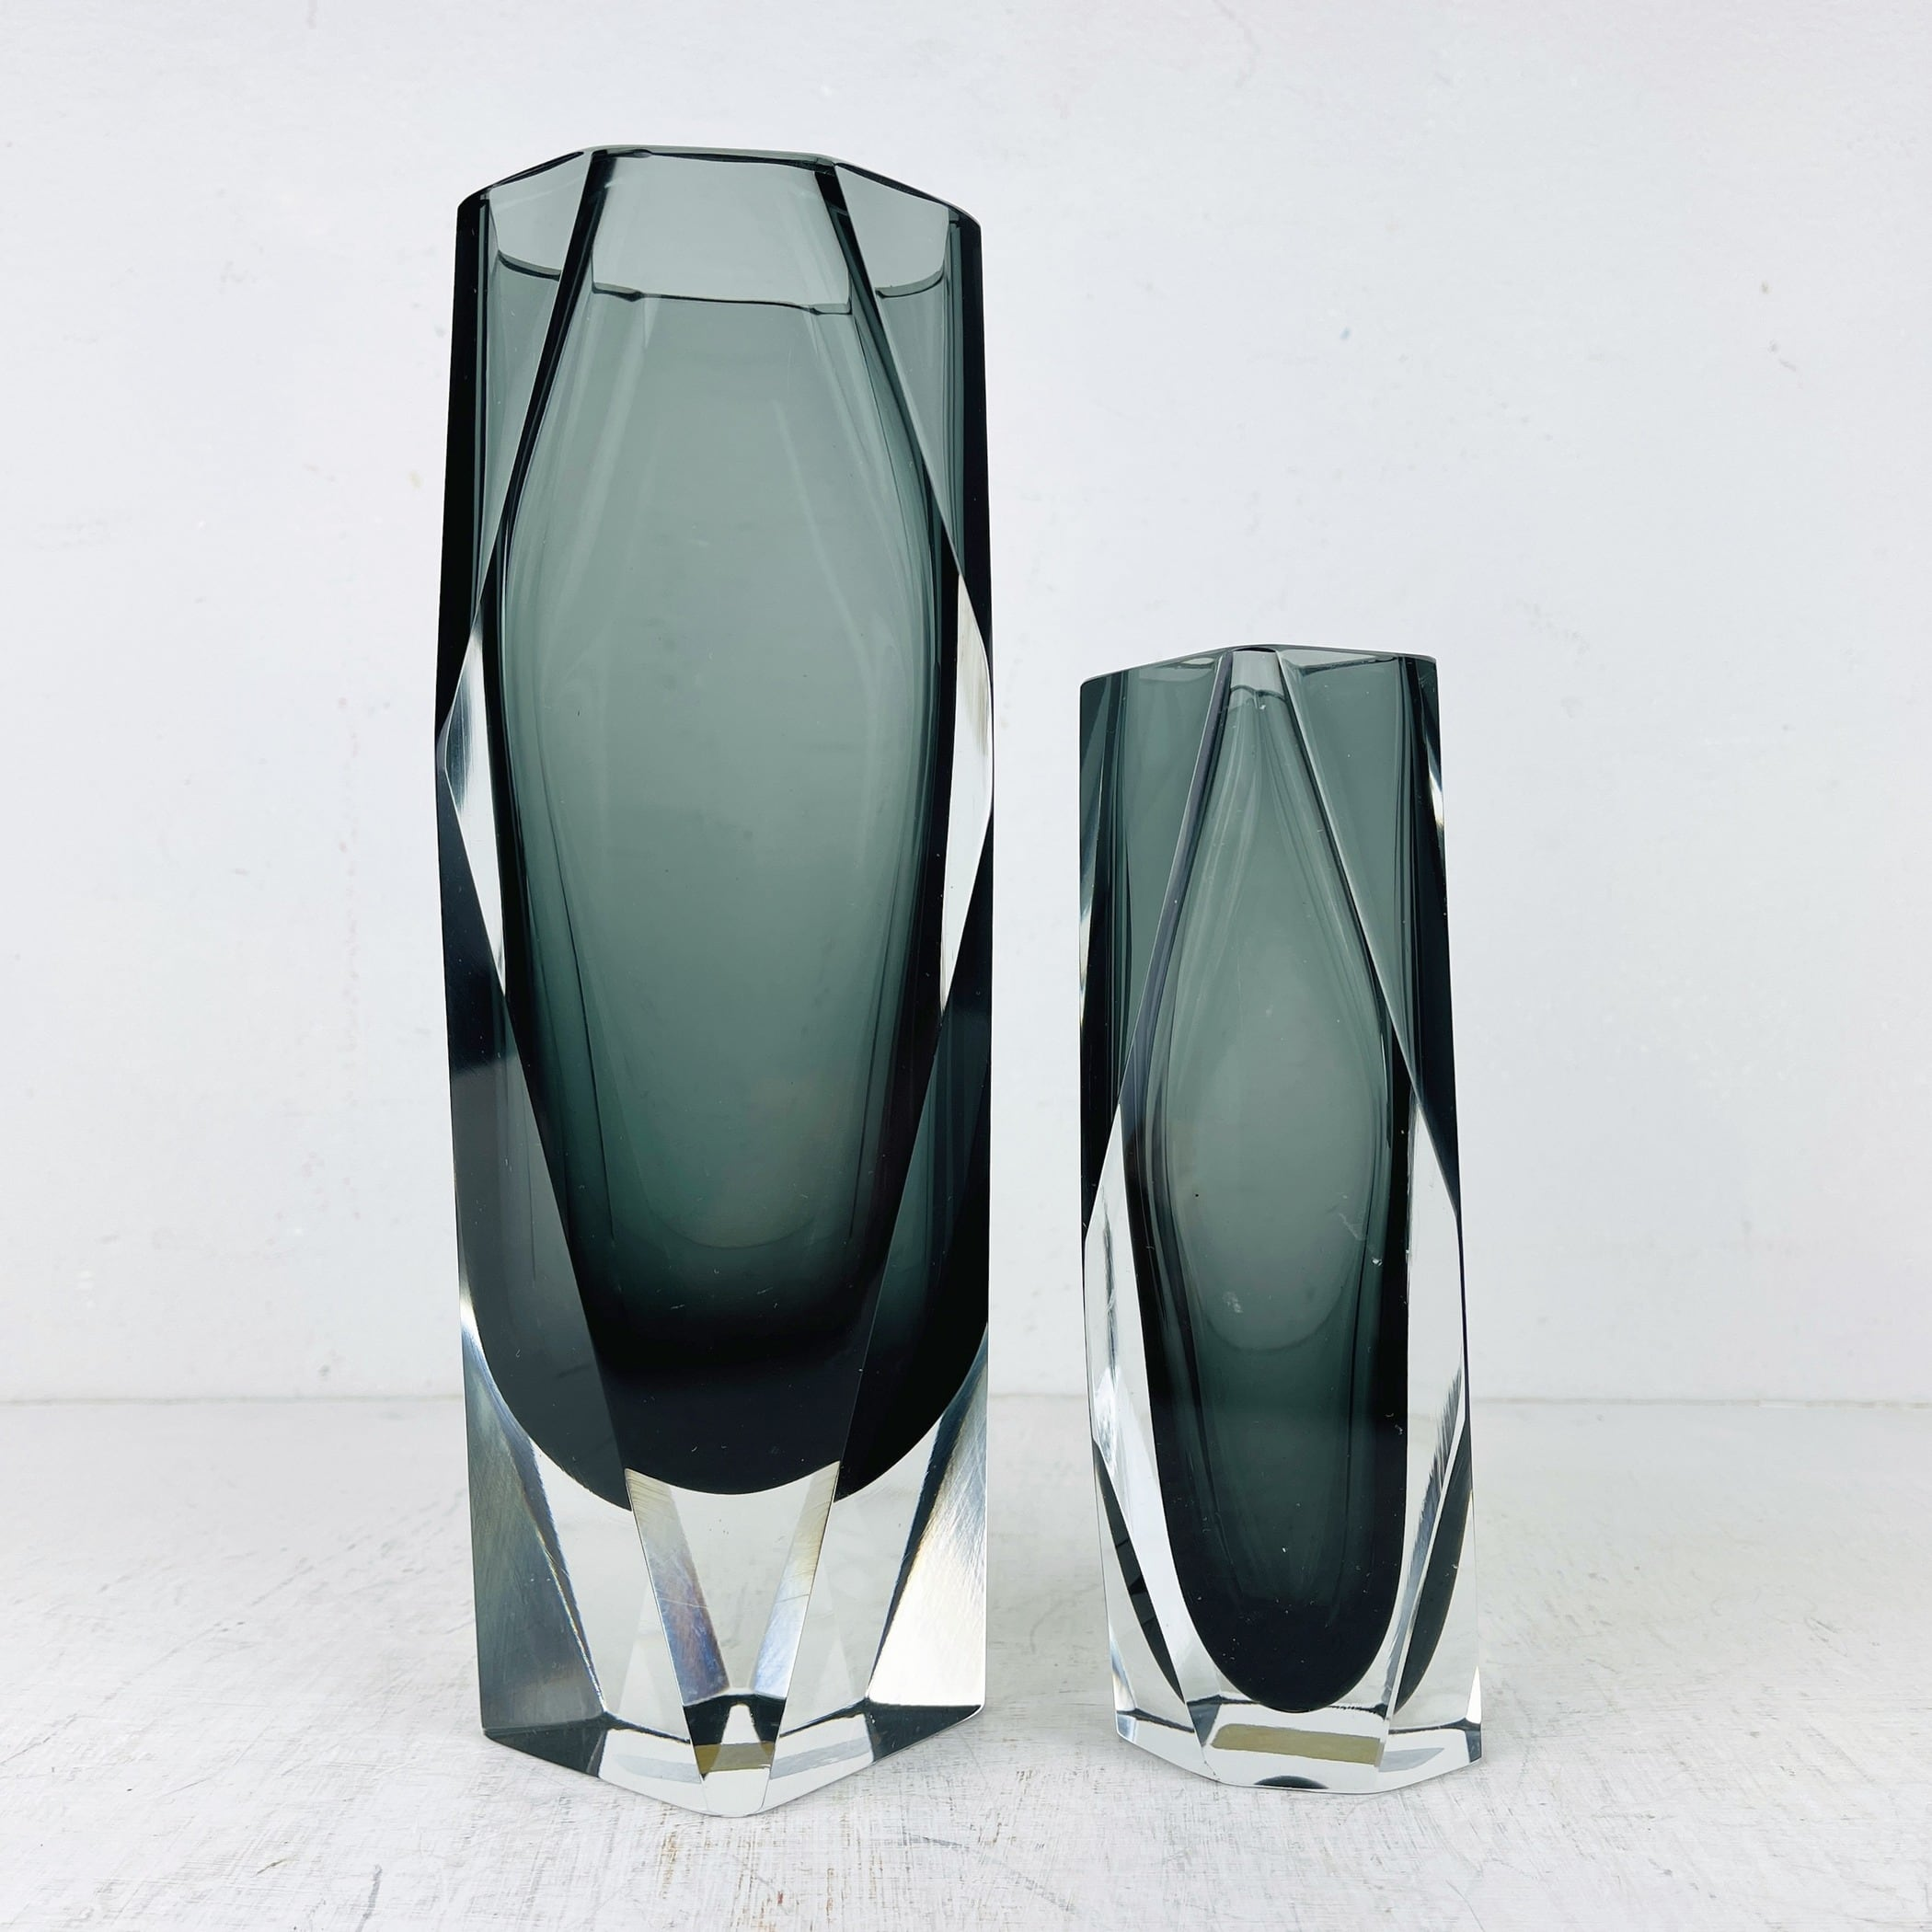 Set of 2 grey murano sommerso faceted glass hand-cut vases Gotham Collection by Mandruzzato Italy 1970s